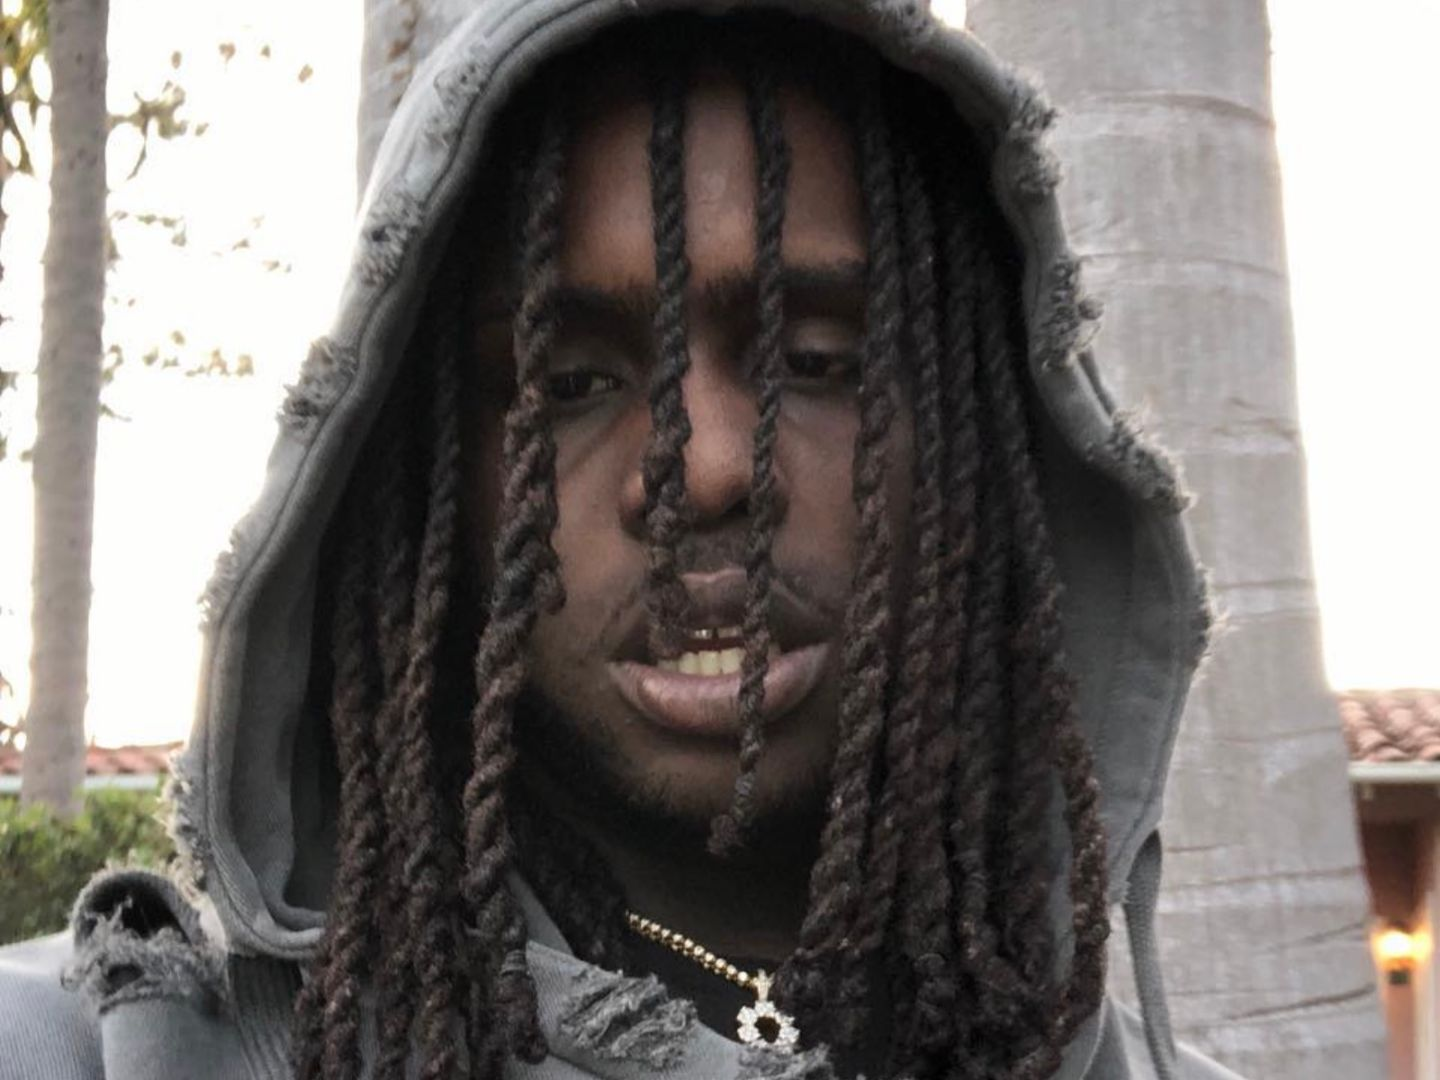 Chief Keef gets Sued for Child Support